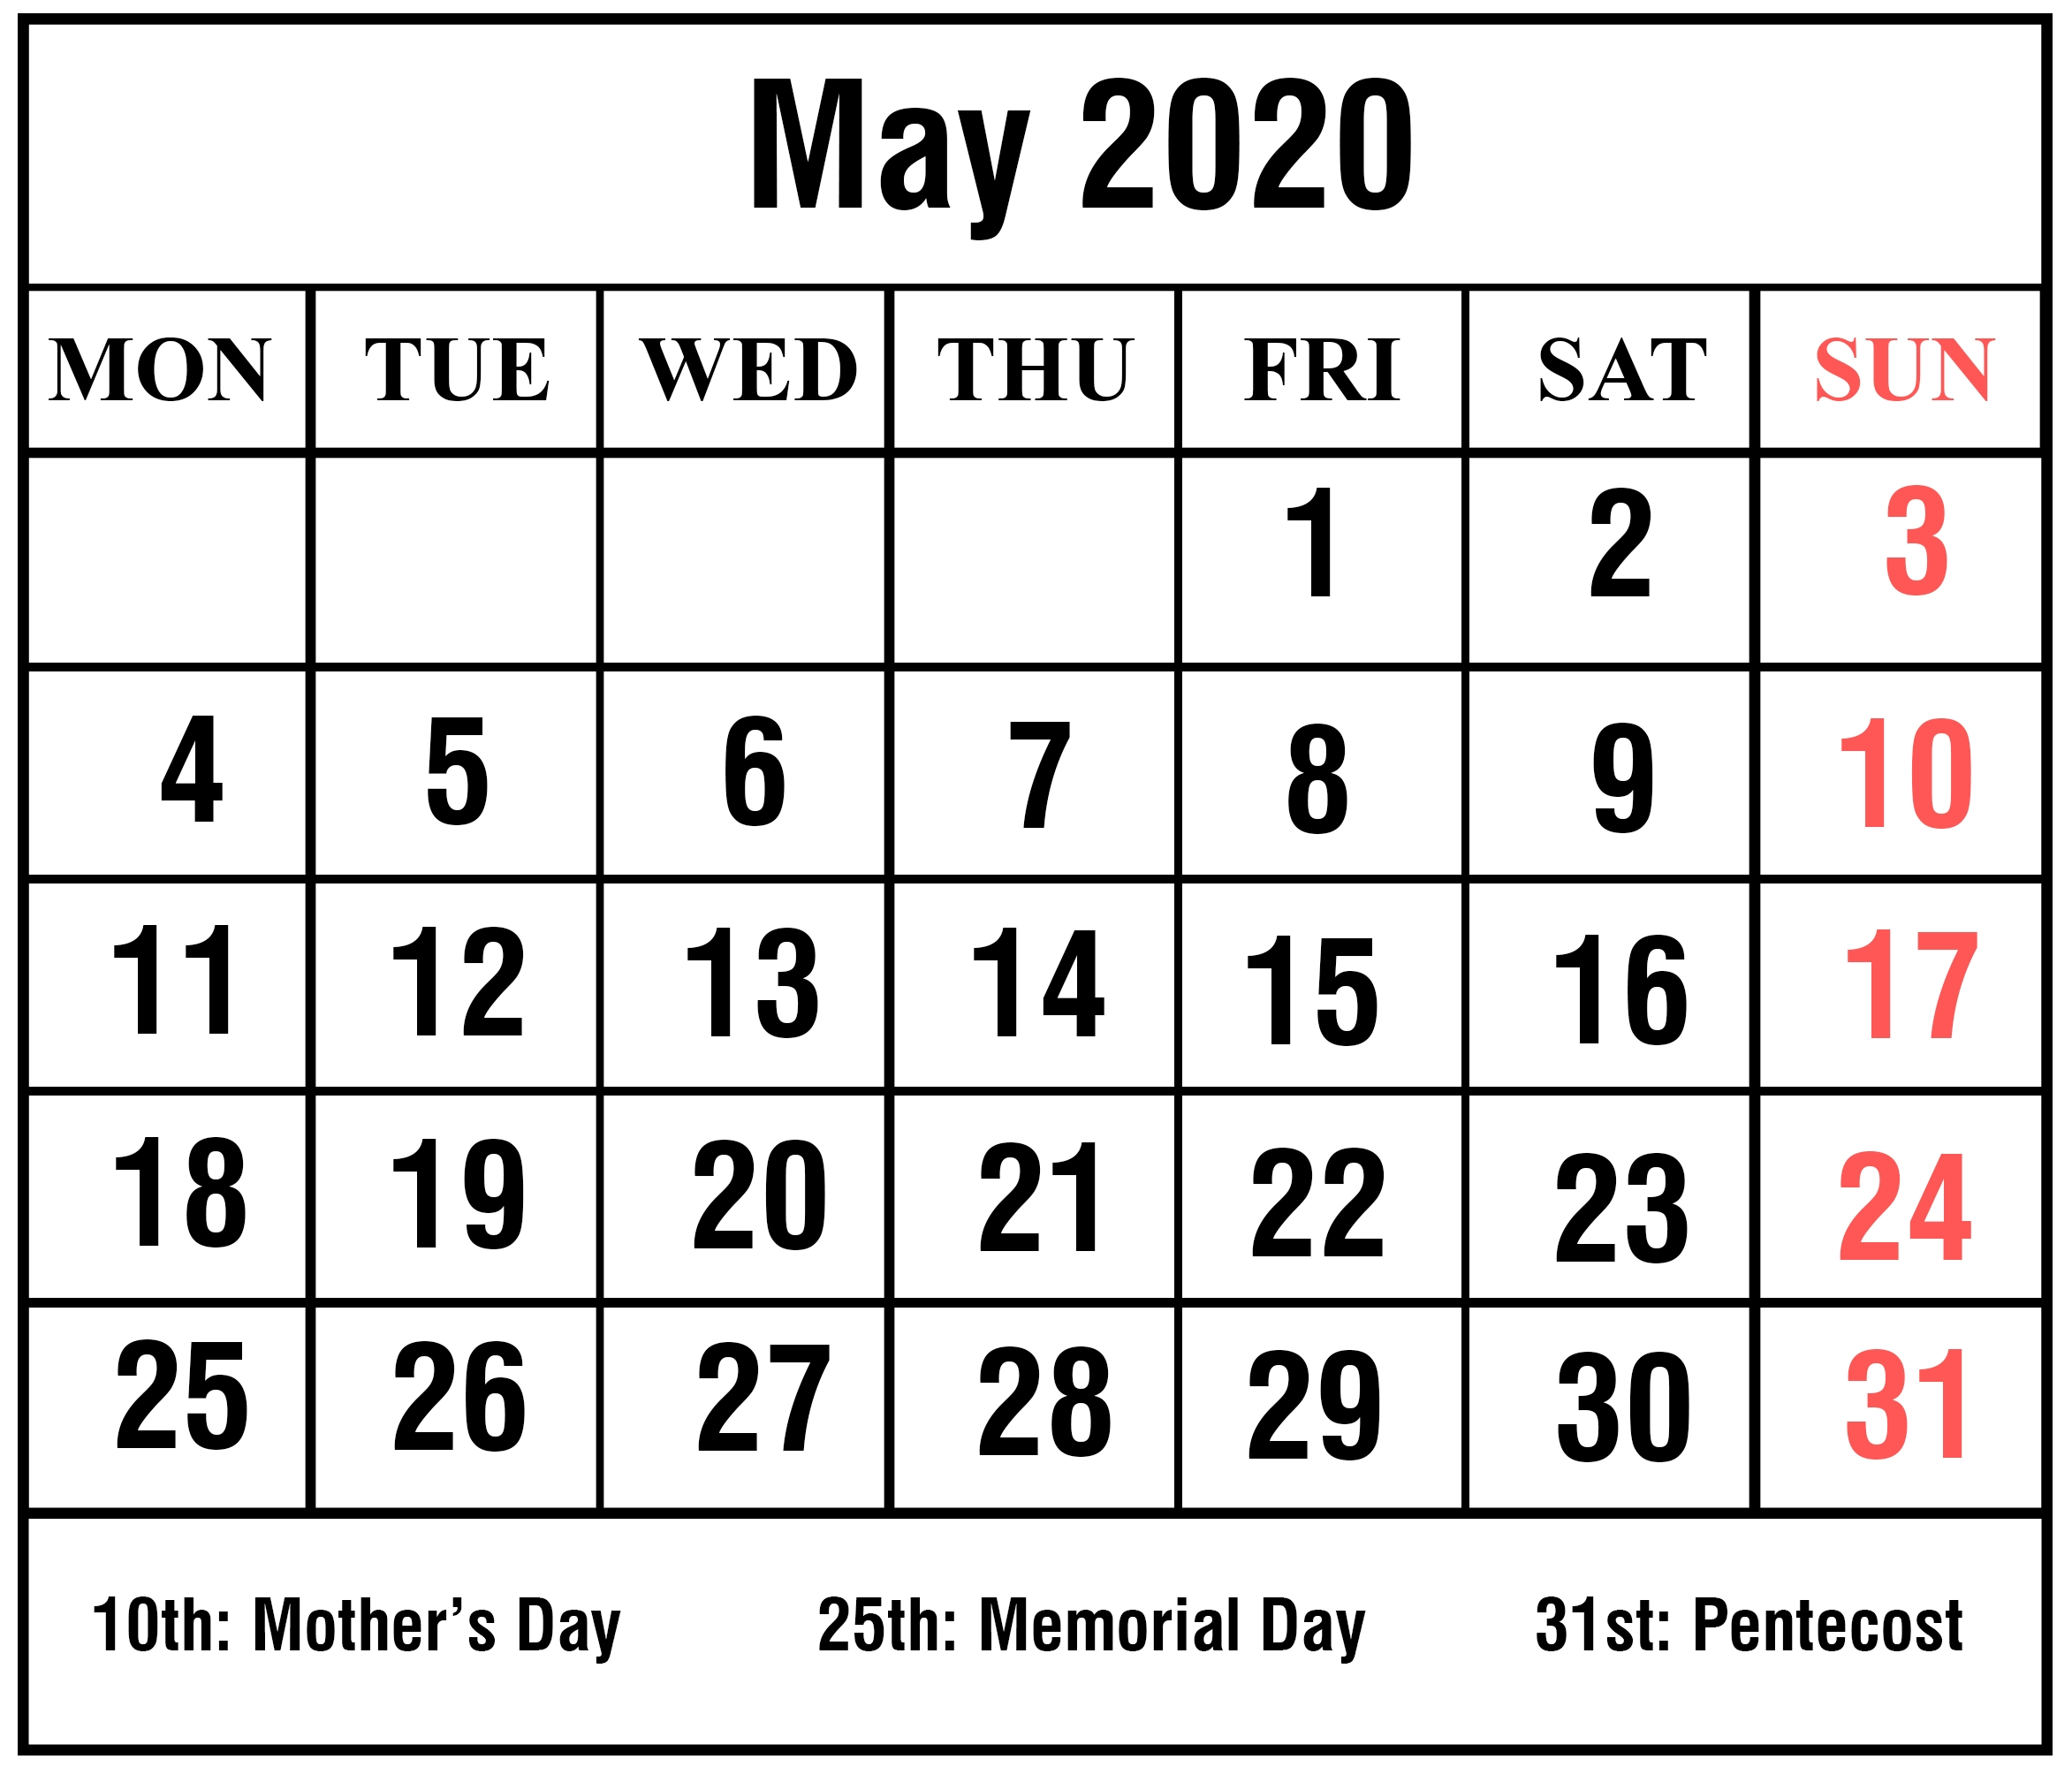 Download Free Blank May 2020 Printable Calendar [Pdf, Excel